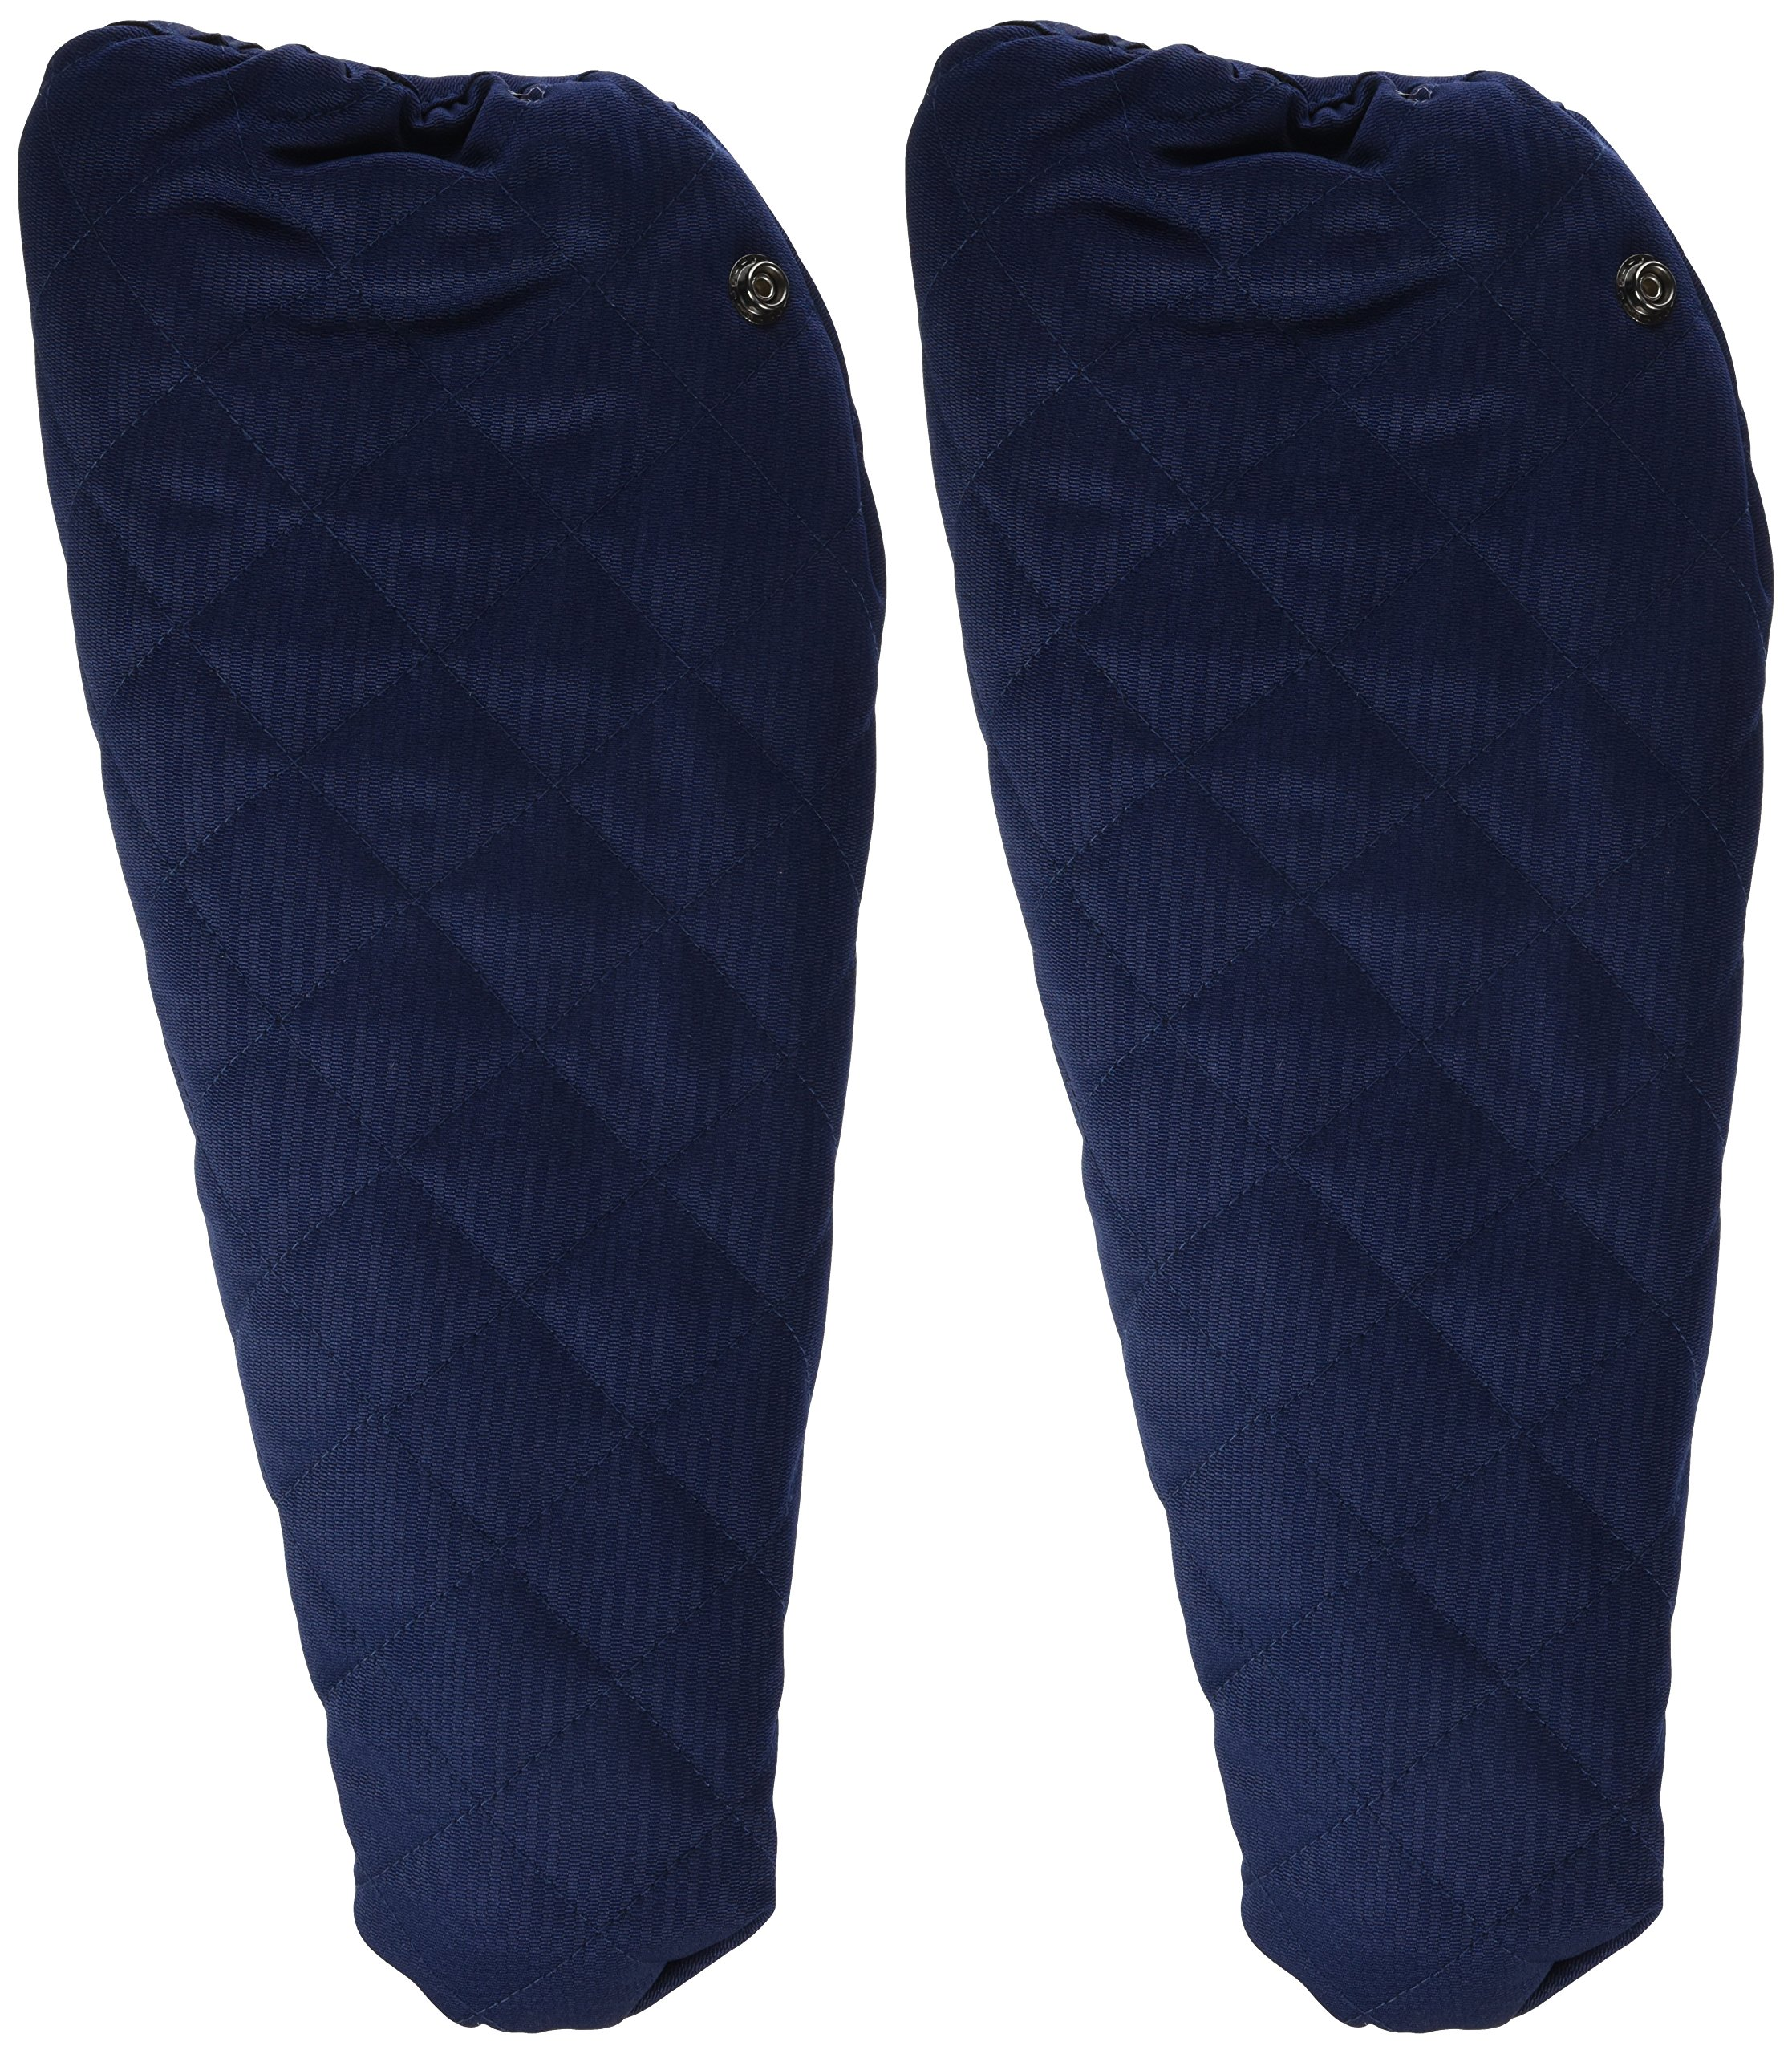 Maclaren Major Elite Lateral Supports, Navy